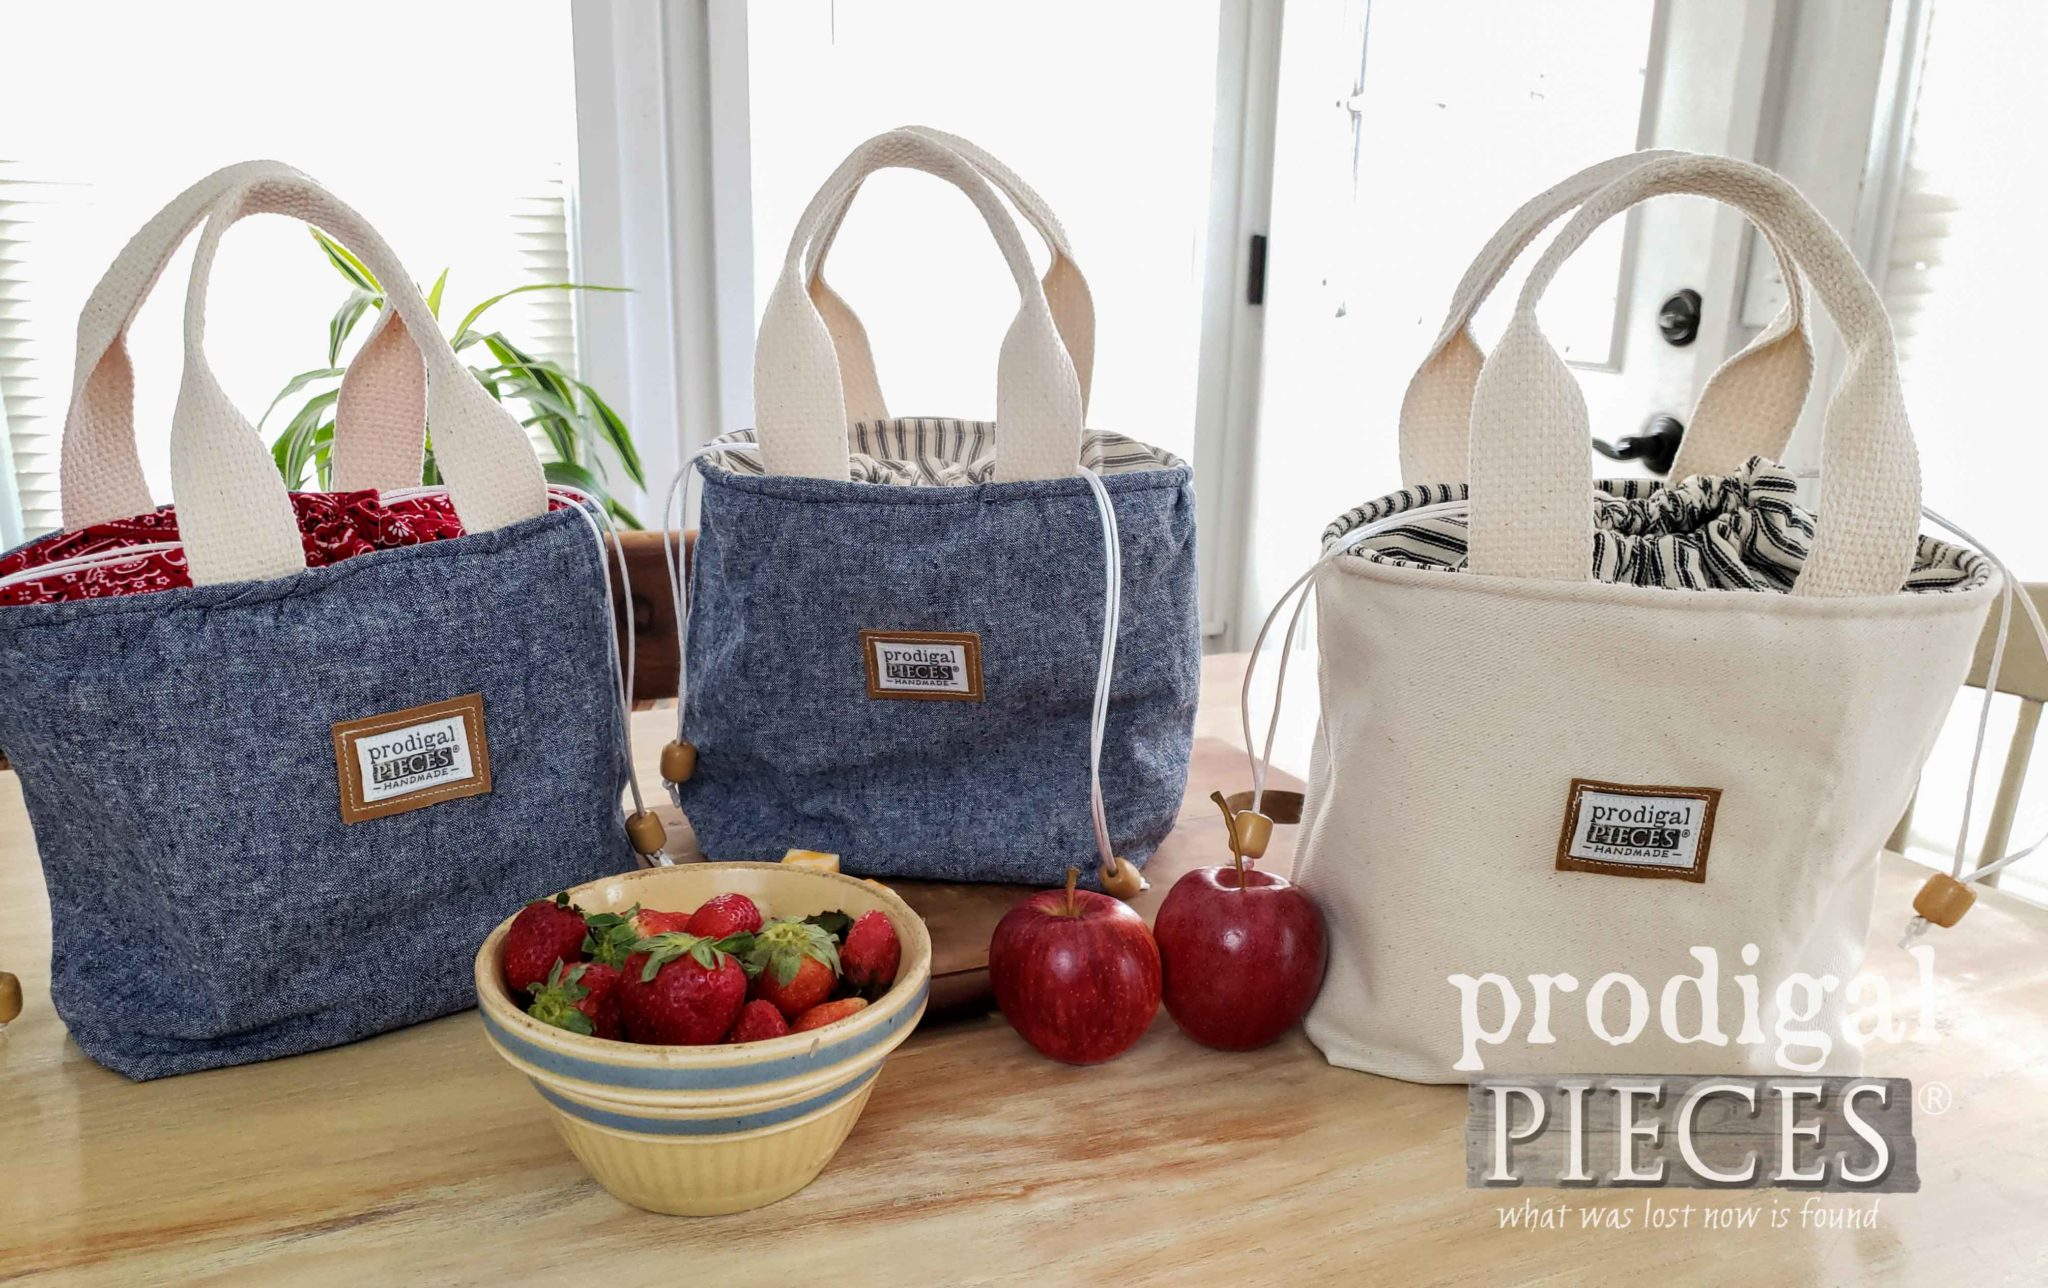 Denim Linen and Twill Lunch Bags by Larissa of Prodigal Pieces | prodigalpieces.com #prodigalpieces #handmade #home #sewing #fashion